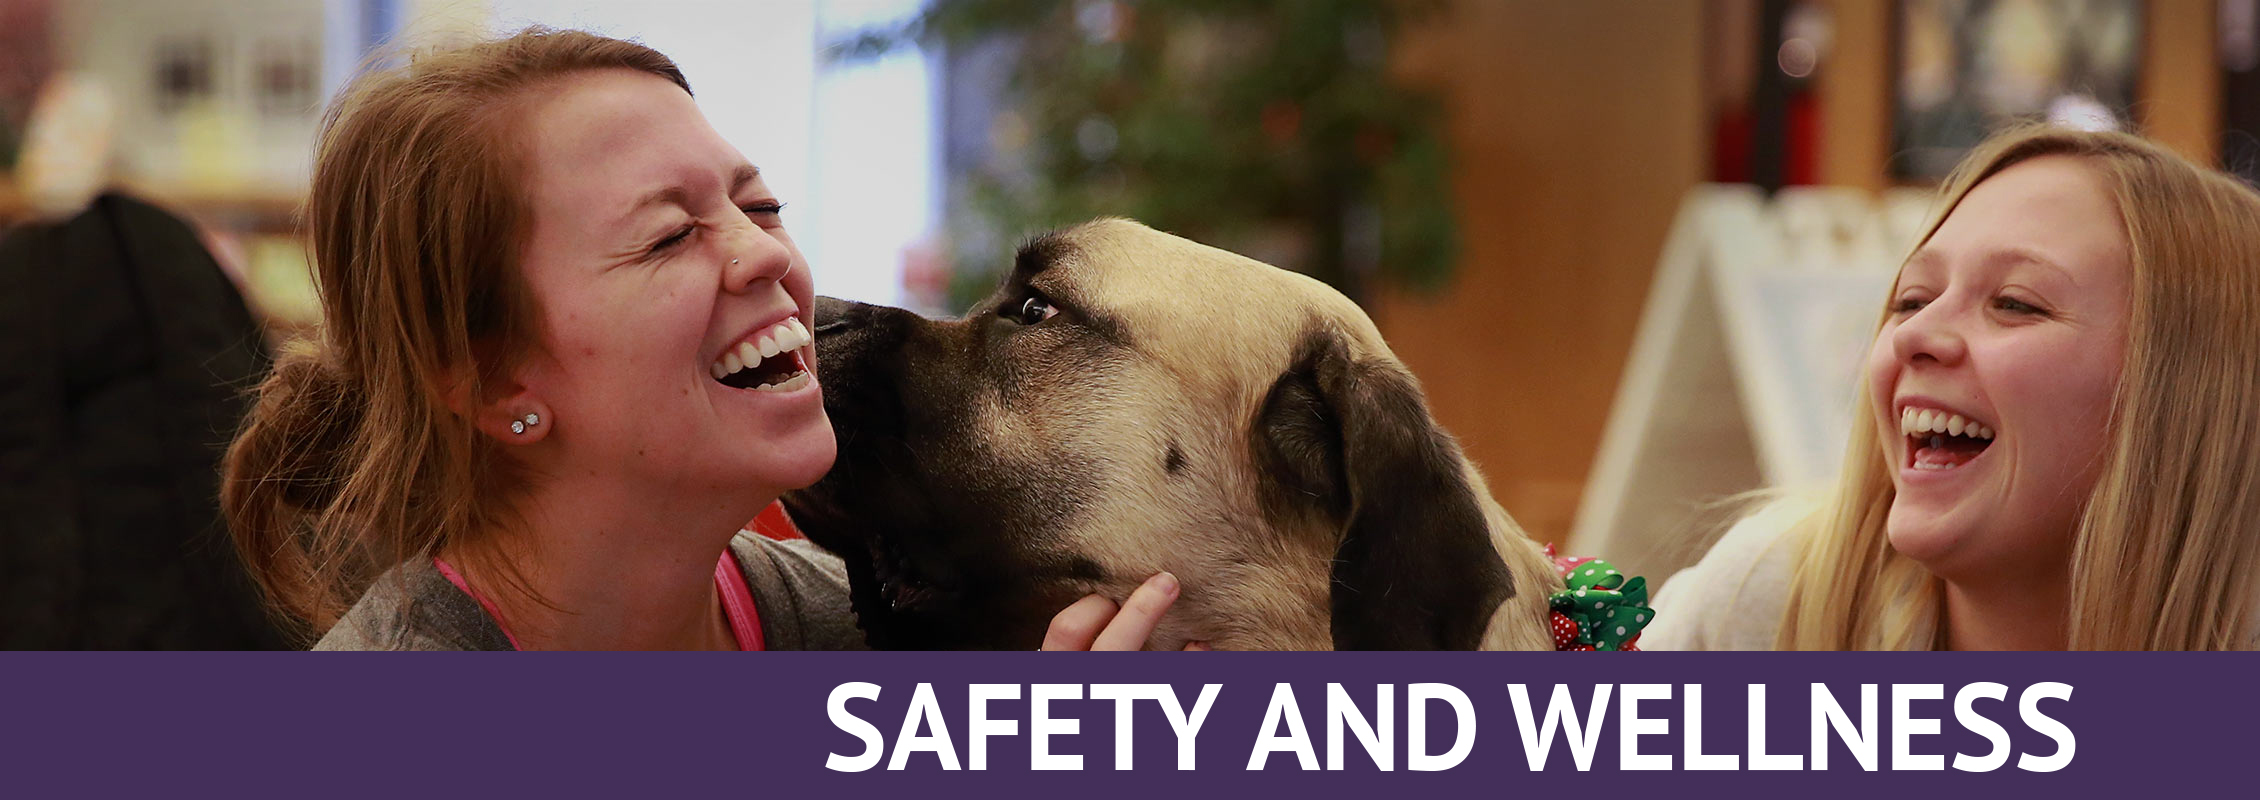 Safety and Wellness: Two students laughing as they pet a dog